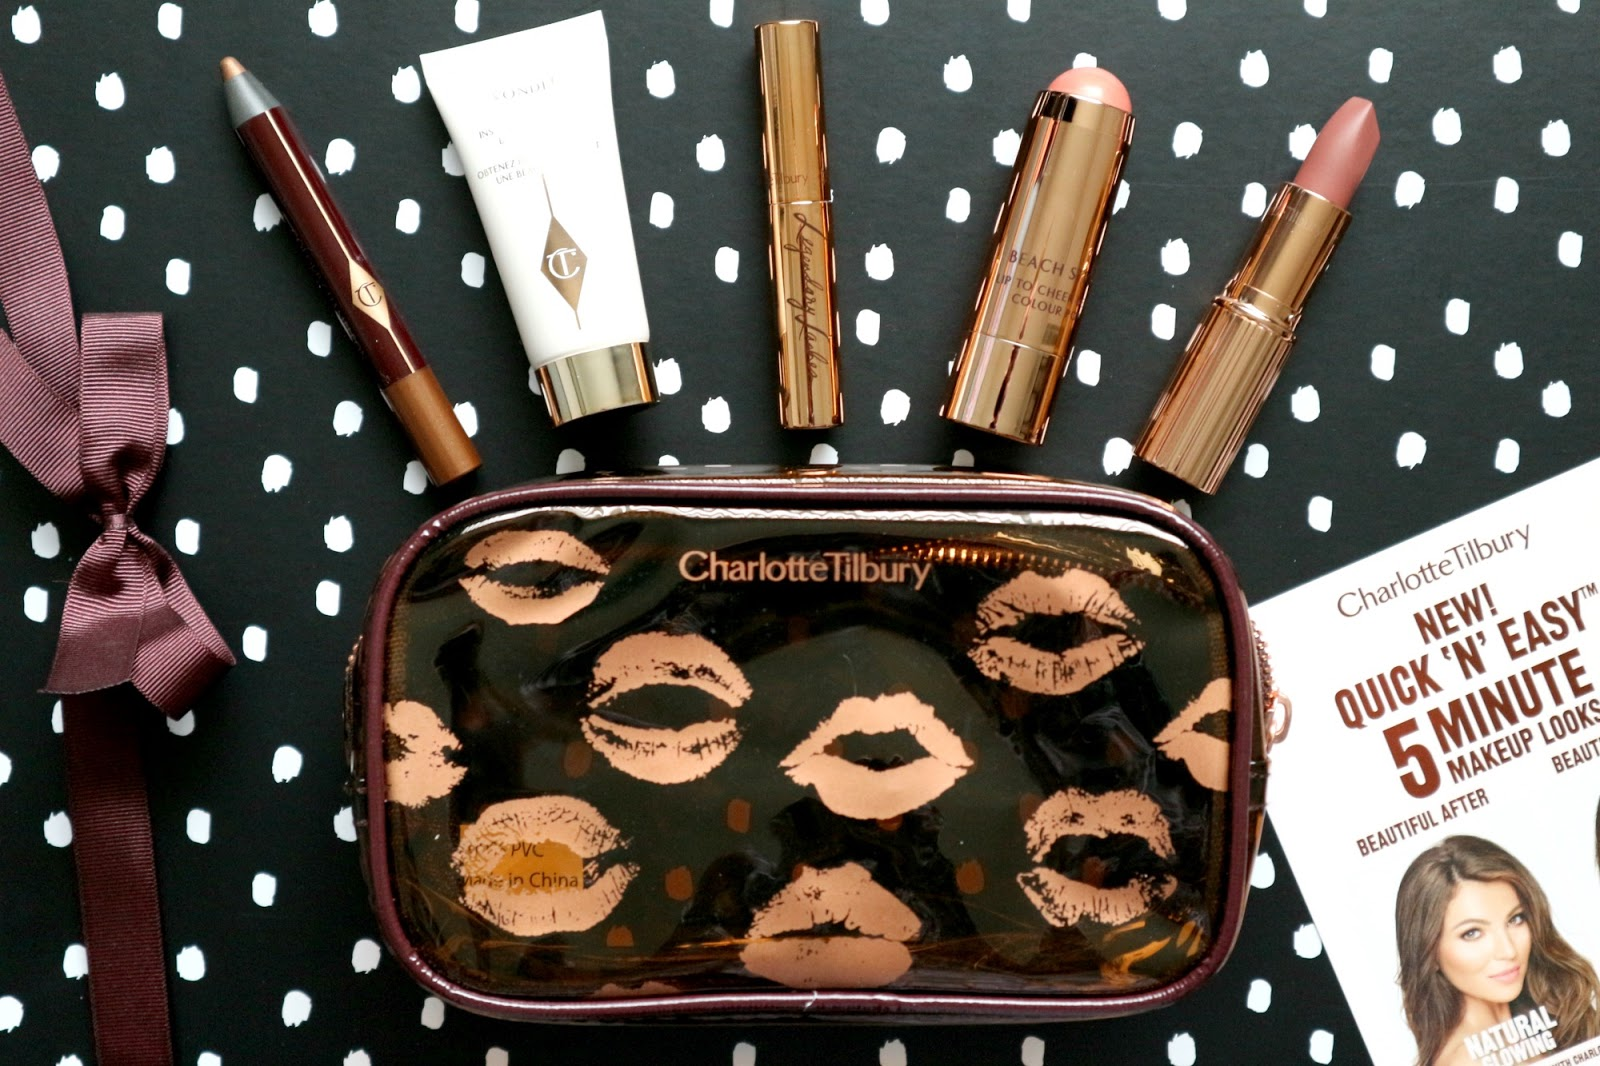 Charlotte Tilbury Quick And Easy Review